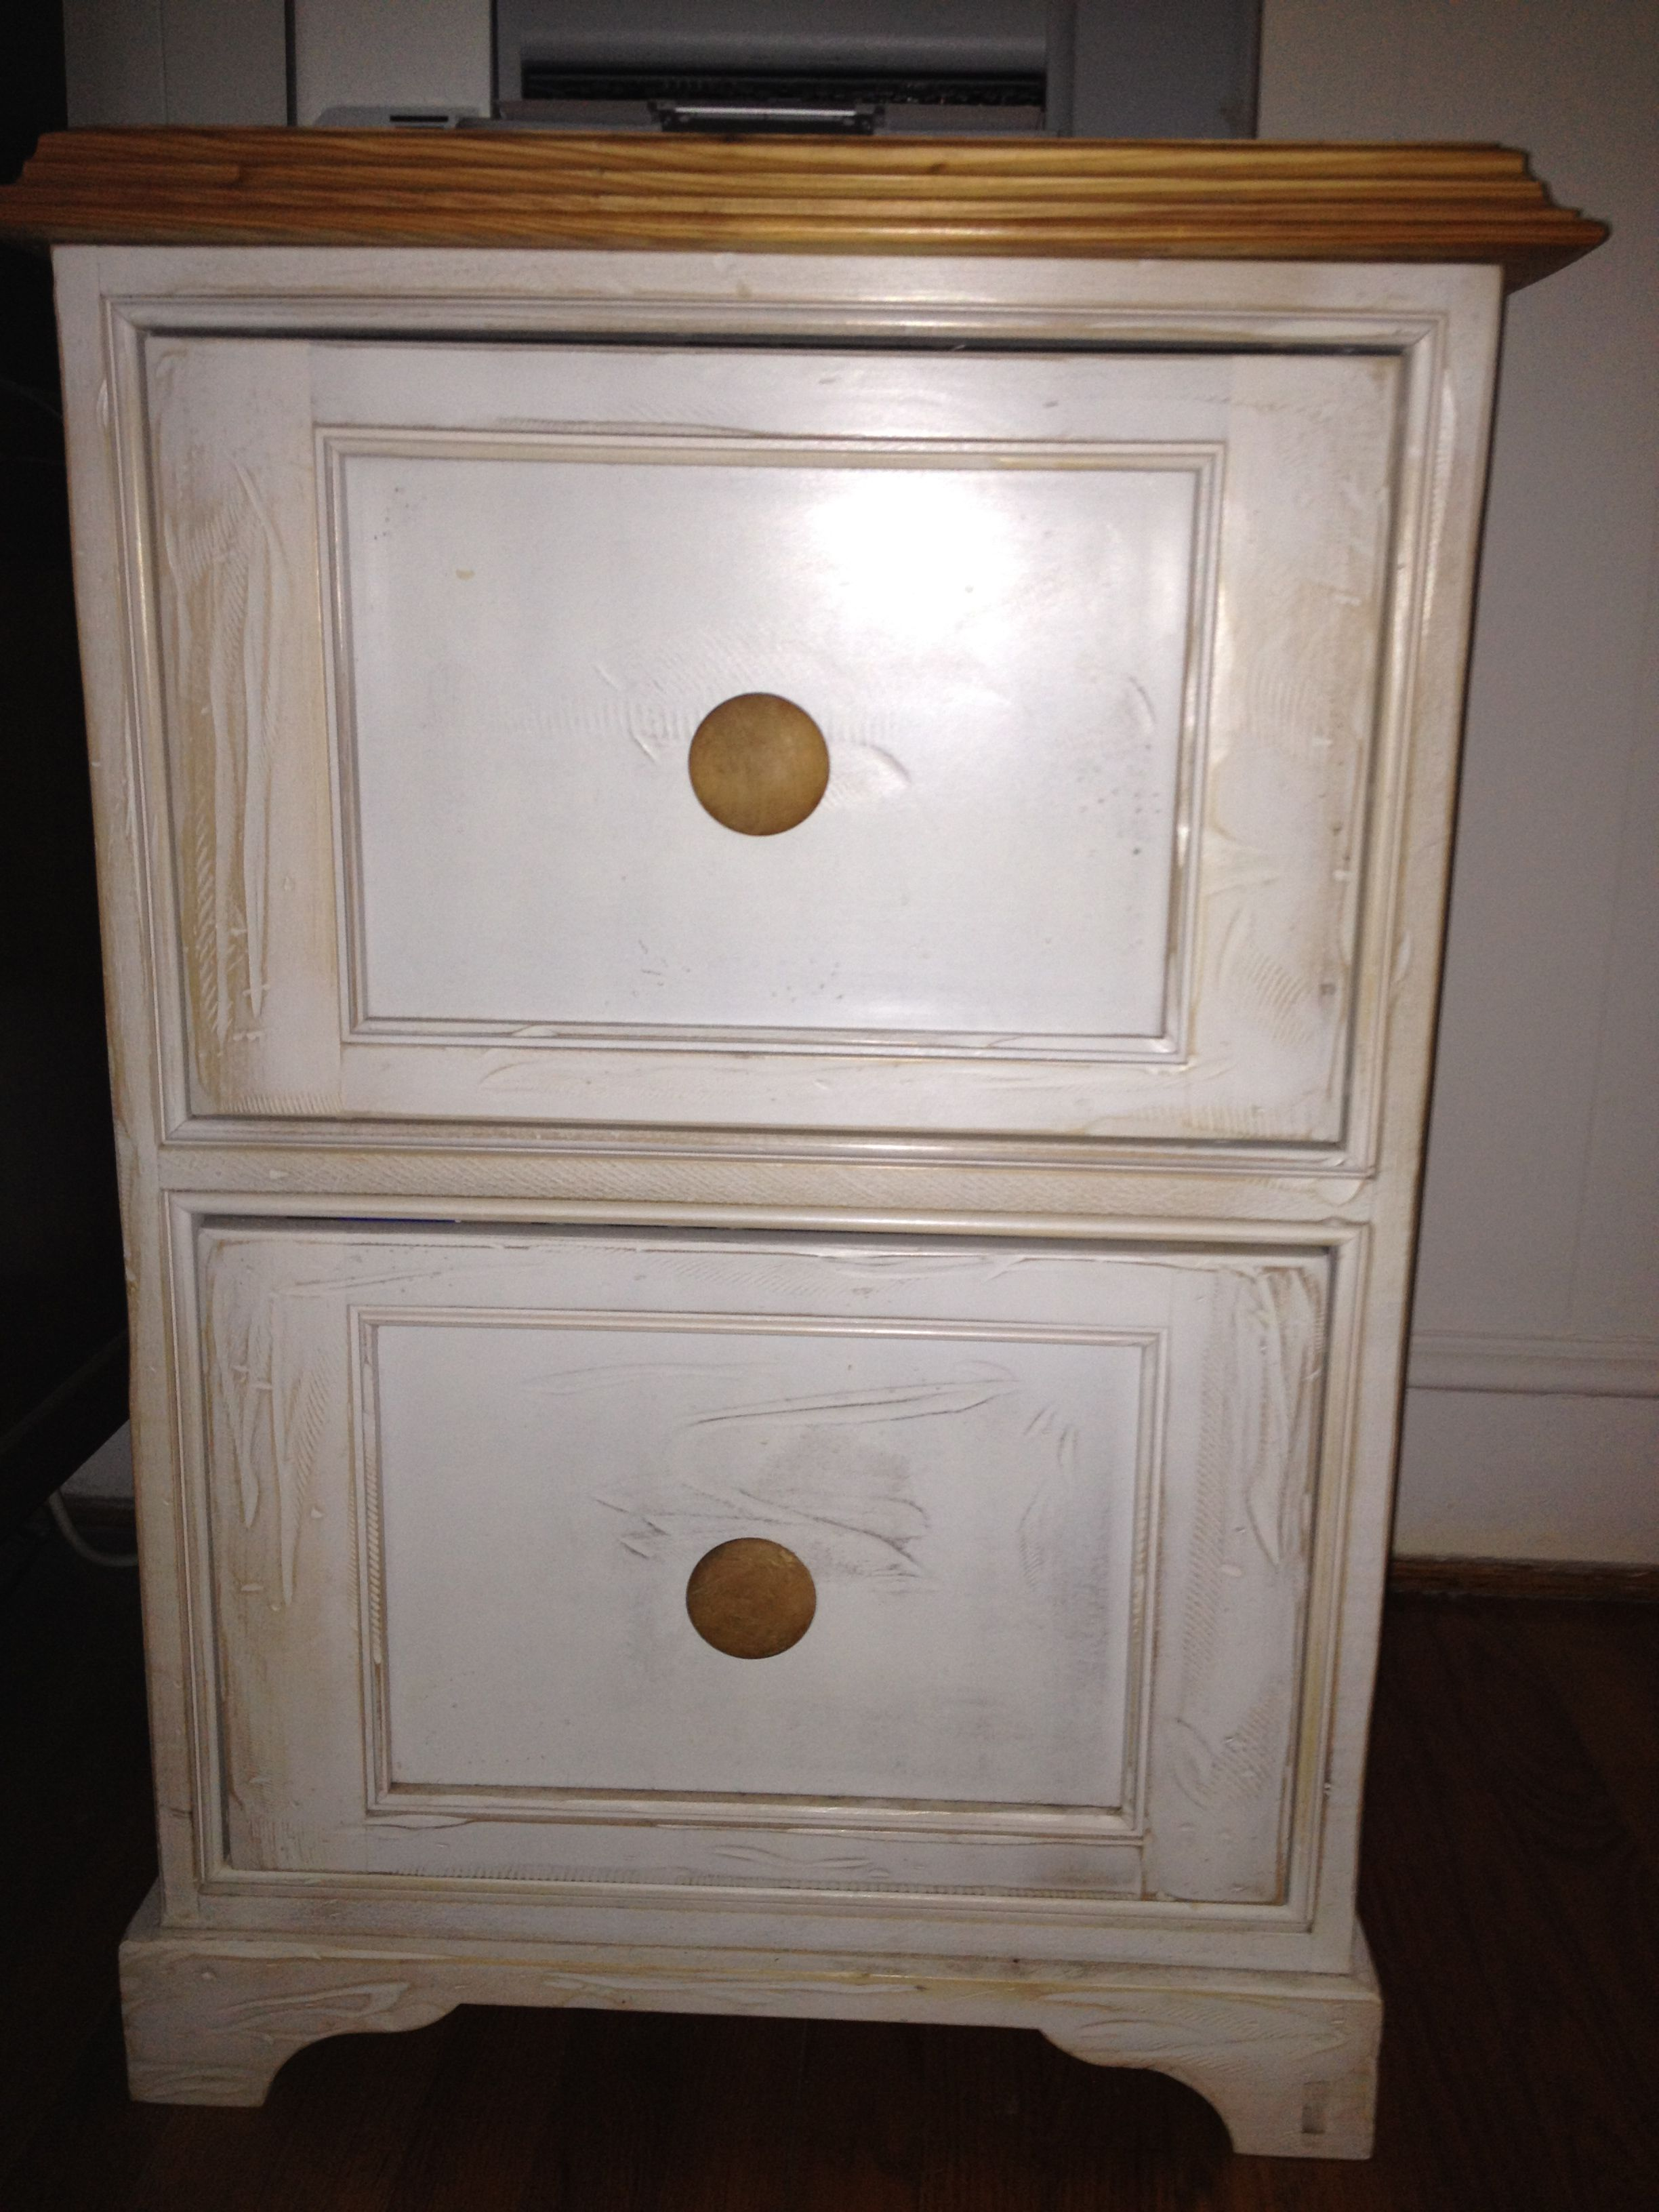 This painted white wooden filing cabinet has a traditional feel with